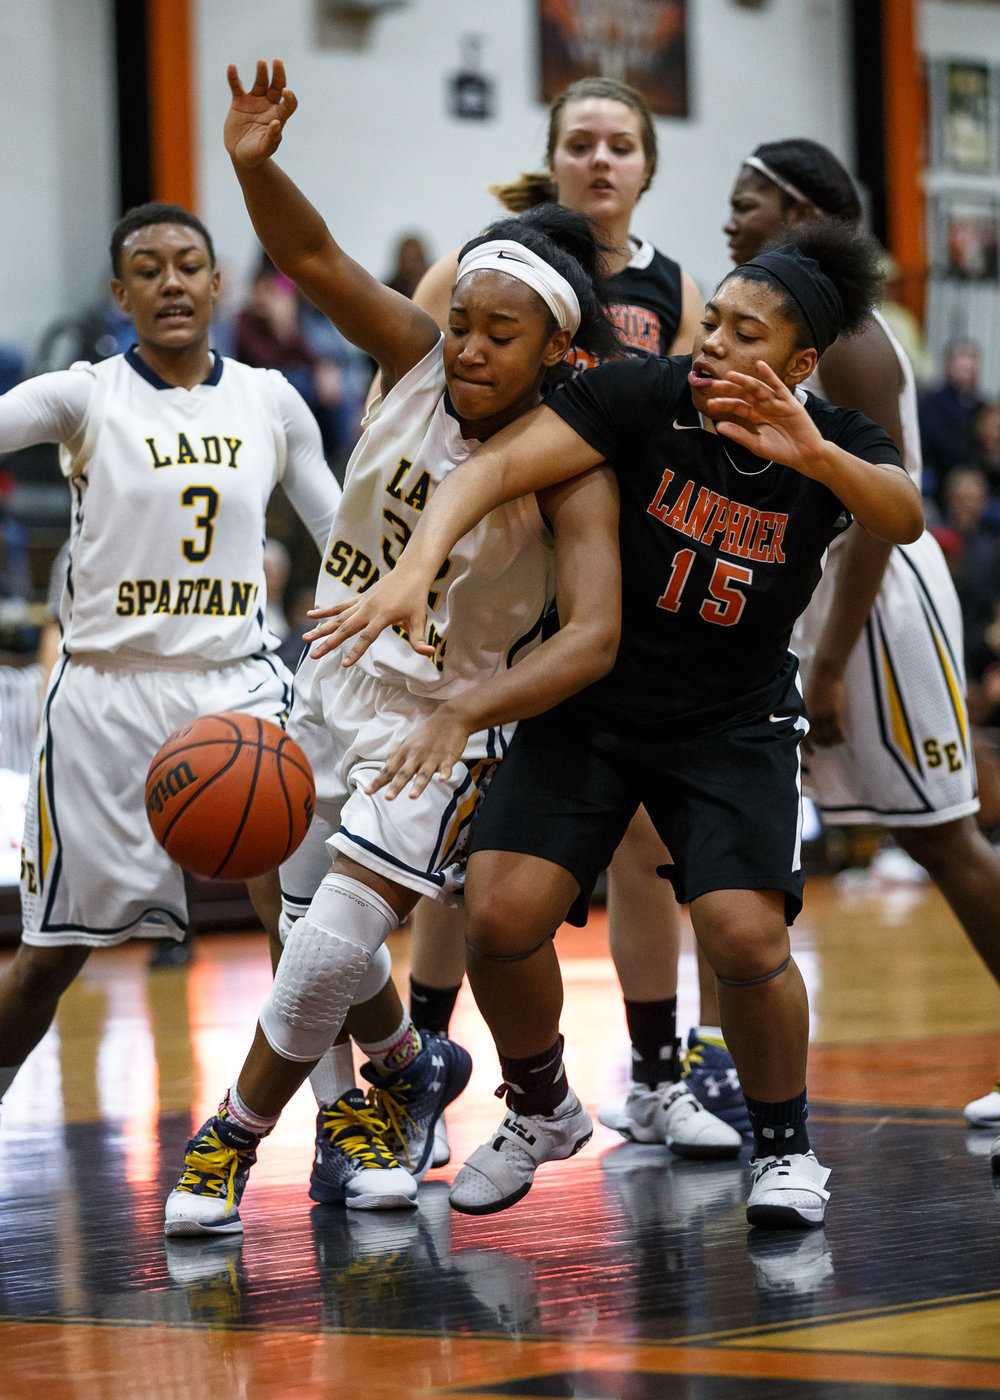 Southeast's Jade King (32) and Lanphier's Faith Price (15) battle for possession of the ball underneath the basket in the fourth quarter during the third place game of the Girls City Basketball Tournament at Lanphier High School, Thursday, Jan. 26, 2017, in Springfield, Ill. Justin L. Fowler/The State Journal-Register